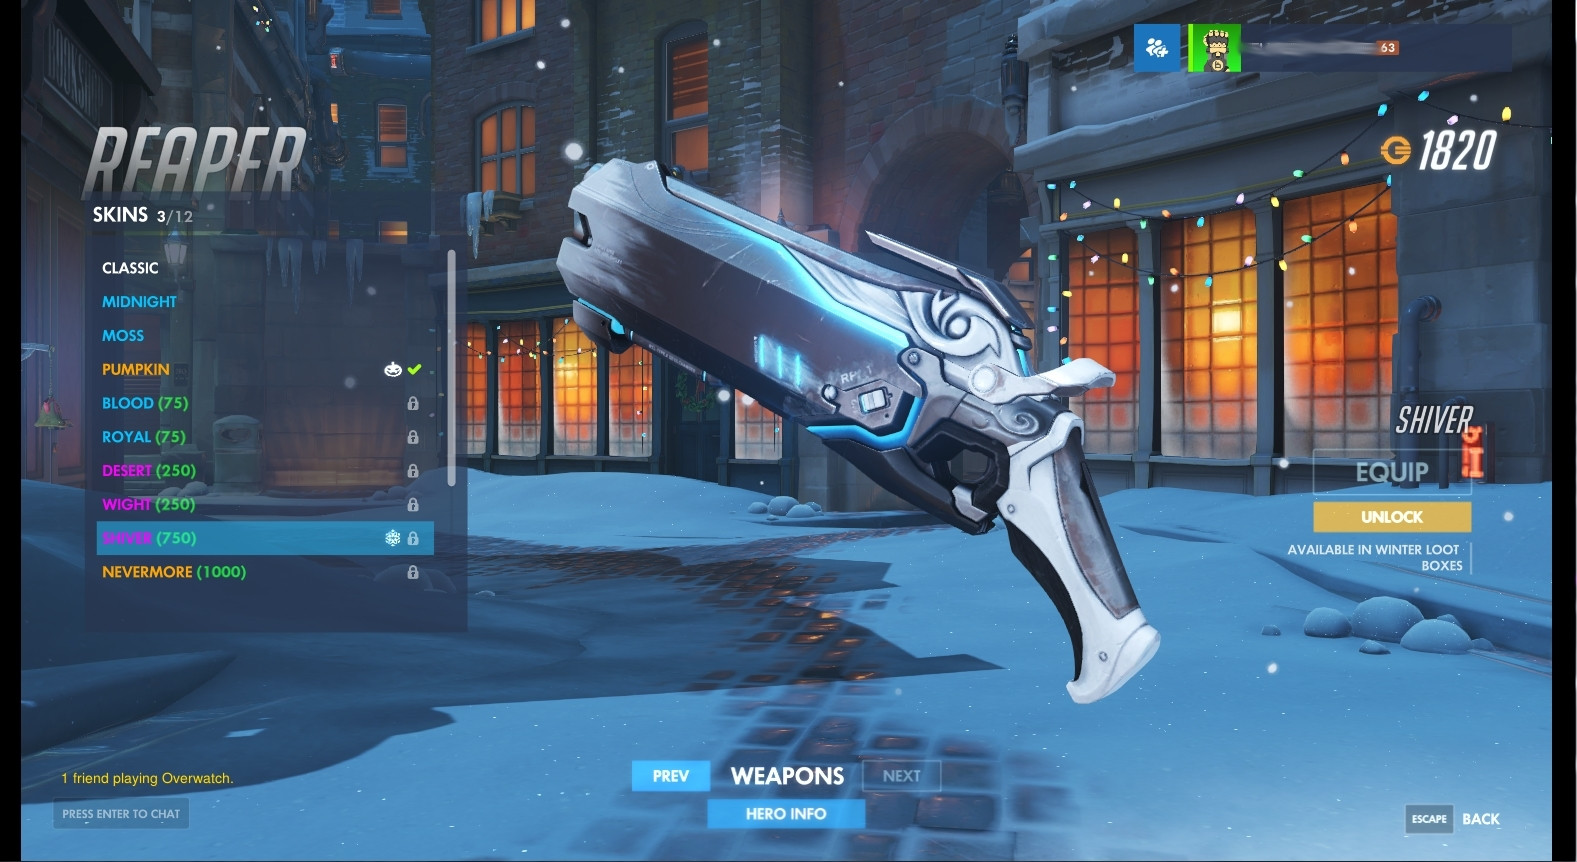 Reaper (Shiver) Weapon